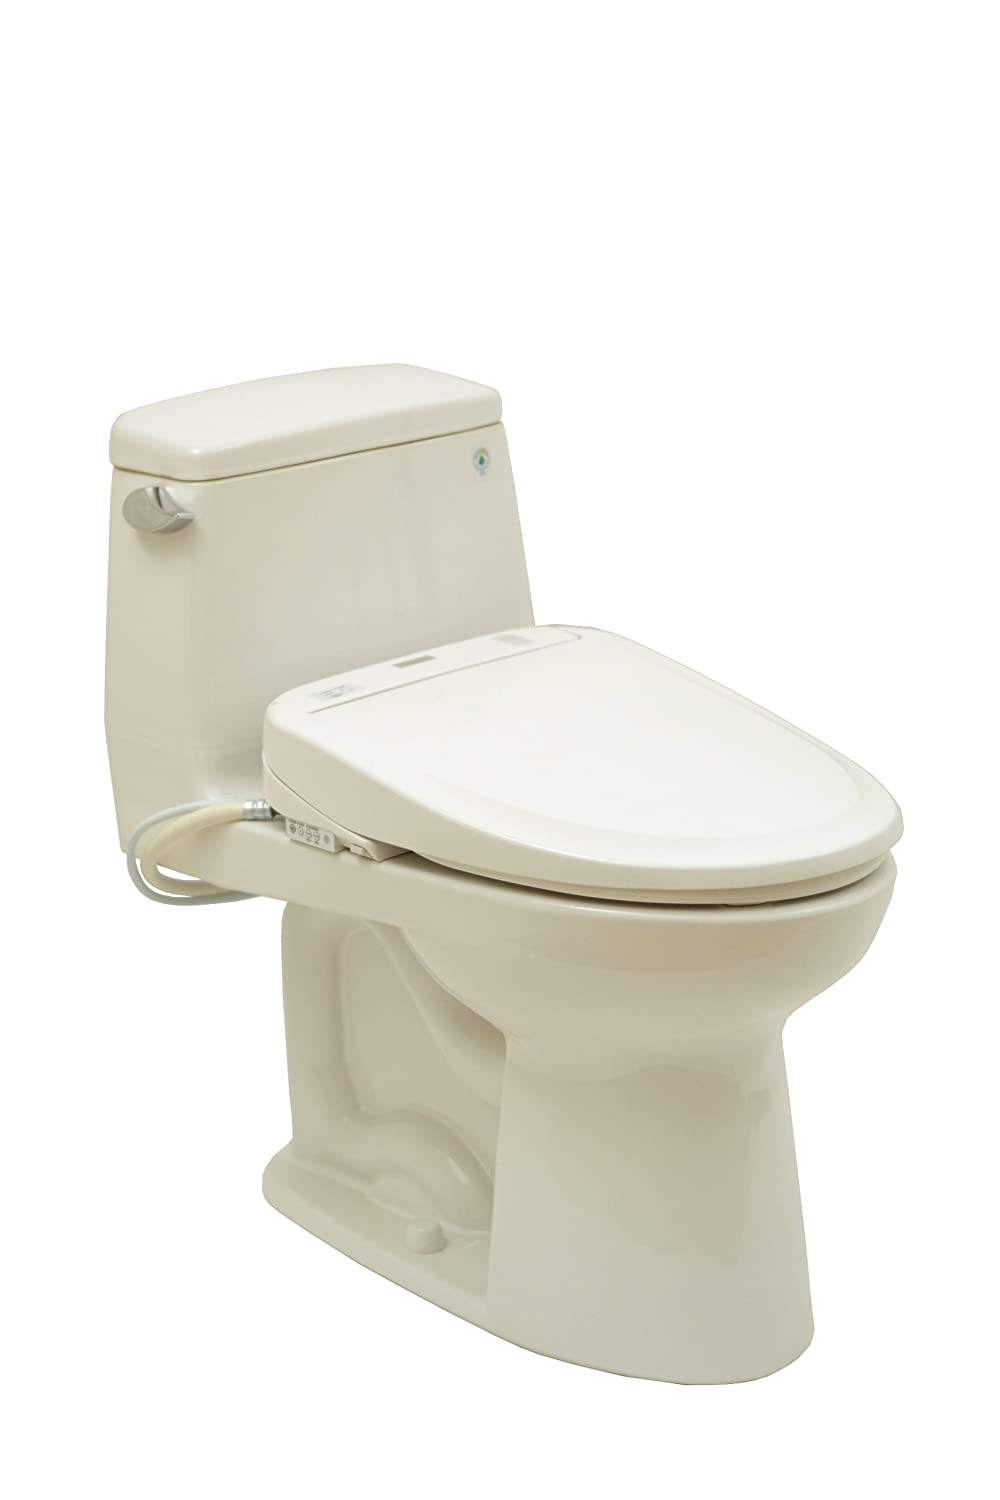 best toto ms604114cefg sw574 12 one piece toilet and washlet combination sedona beige bridpod. Black Bedroom Furniture Sets. Home Design Ideas